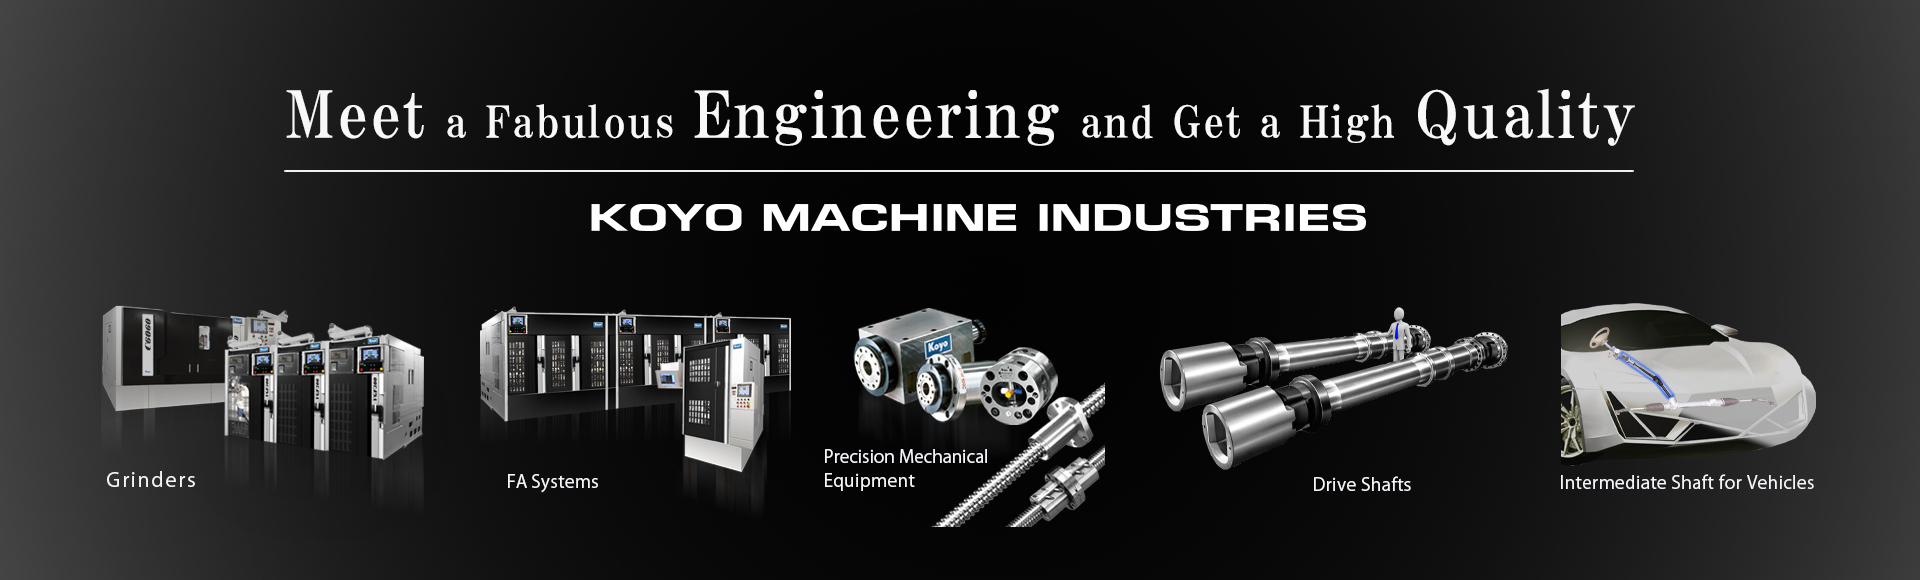 Unexpected Encounter with Unexpected Technology, Increasing Value Koyo Koyo Machinery Co.